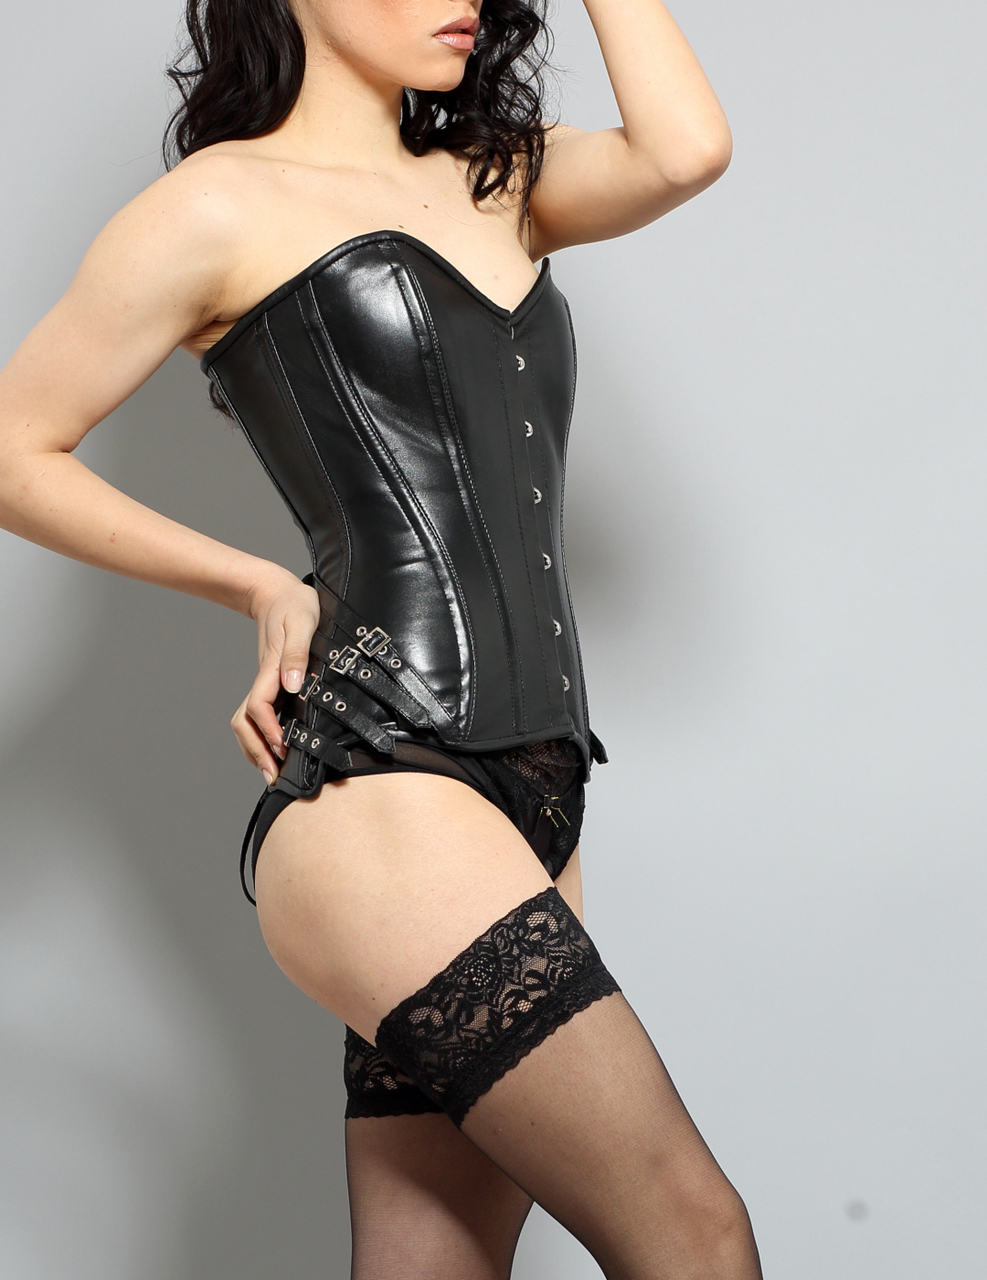 Leather Corset Steel Boned Buckles 41Blk ESSHA